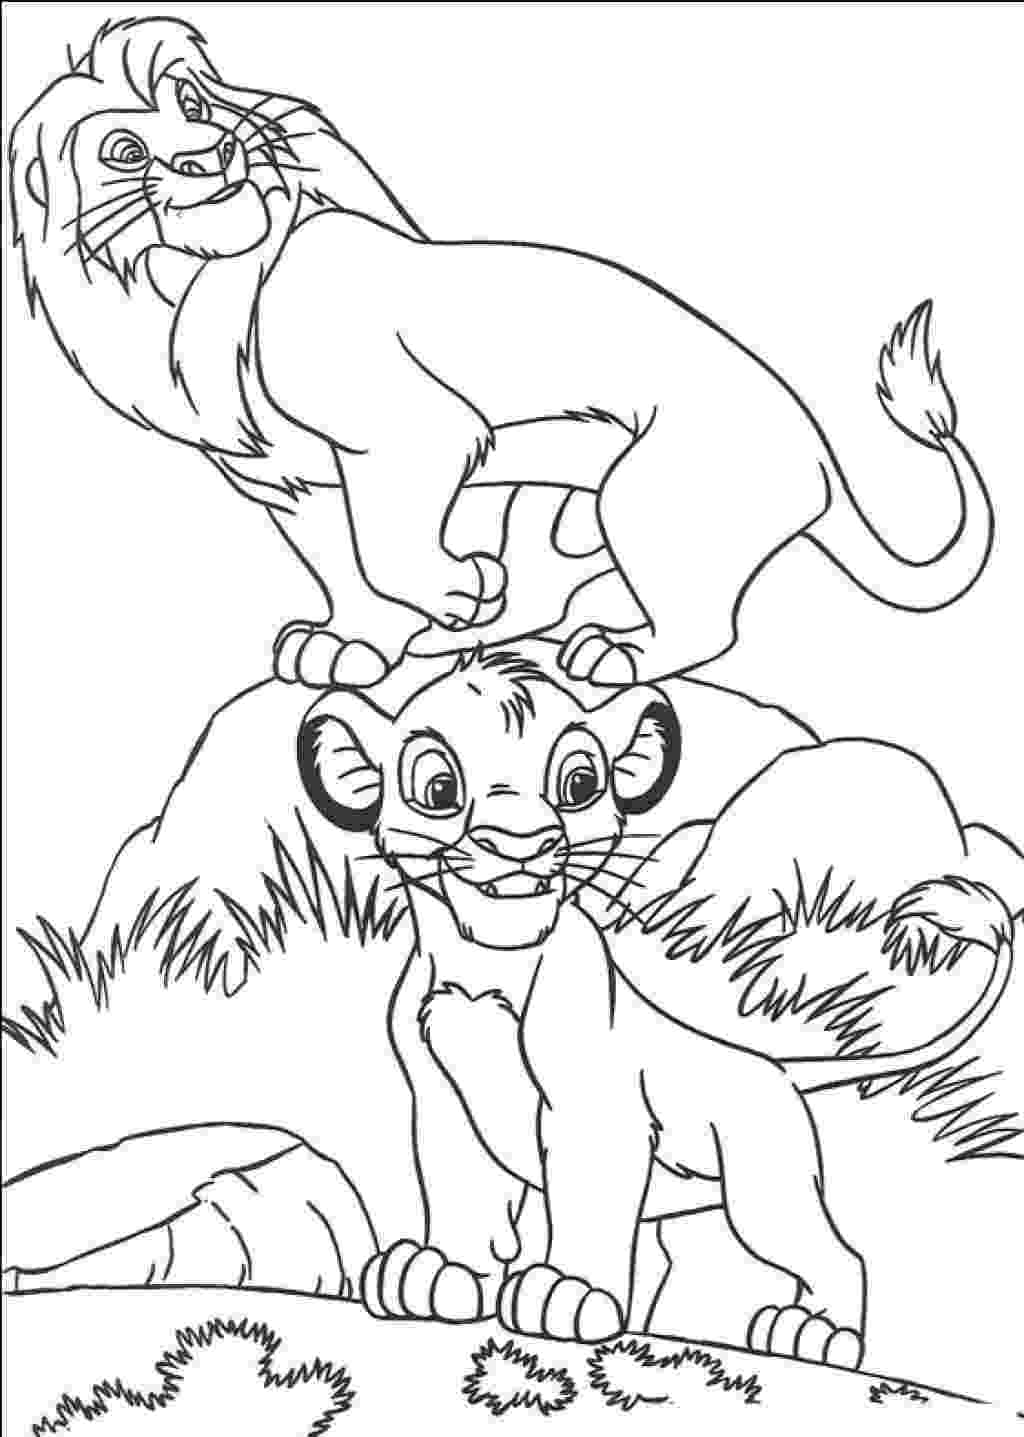 printable coloring pages for kids free printable caterpillar coloring pages for kids kids coloring pages for printable